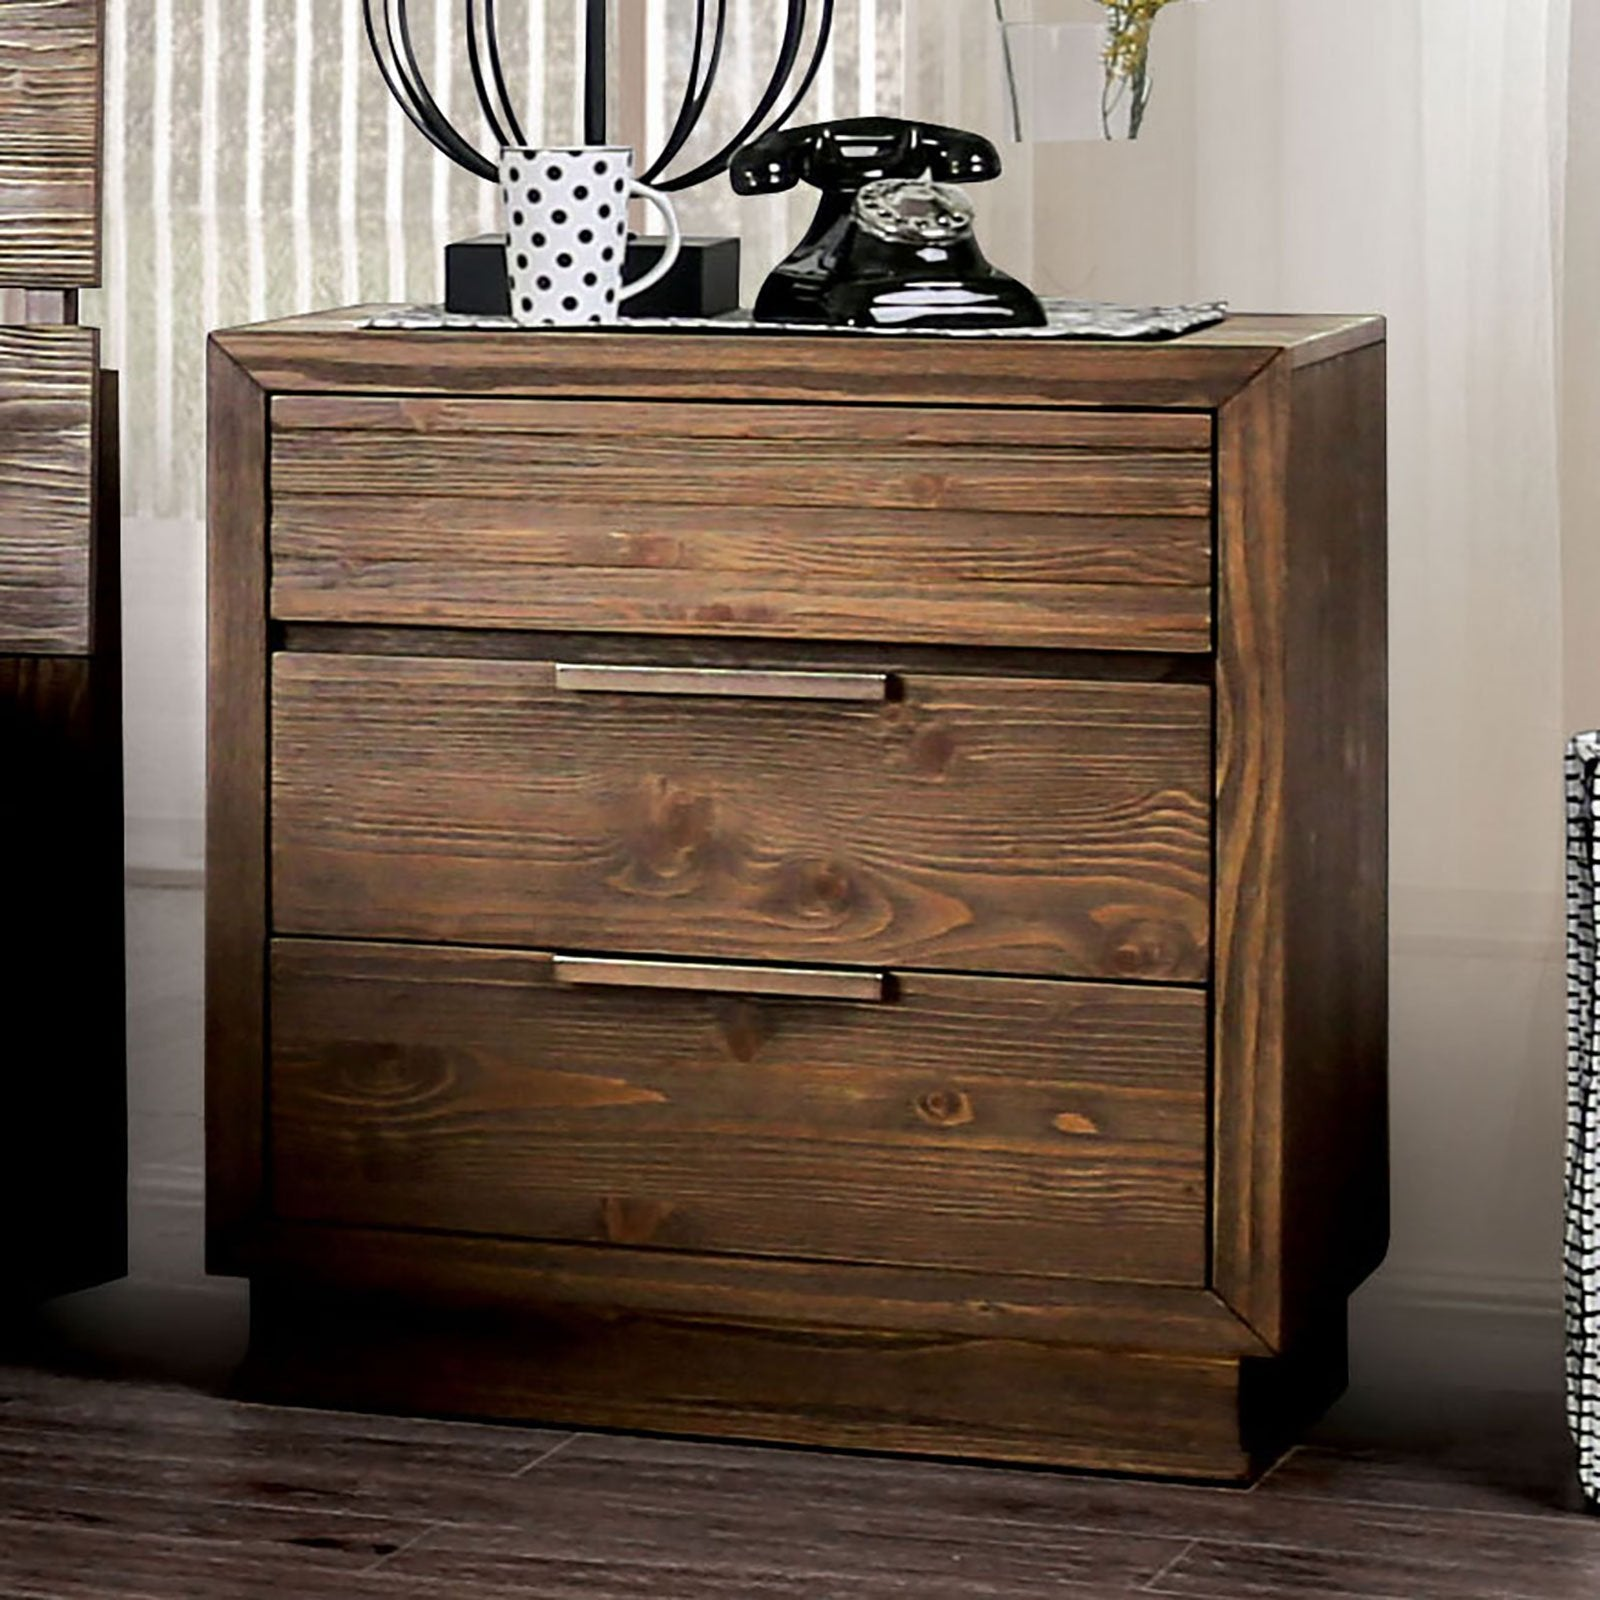 Tolna Rustic Night Stand w- USB Outlet - InteriorDesignsToGo.com